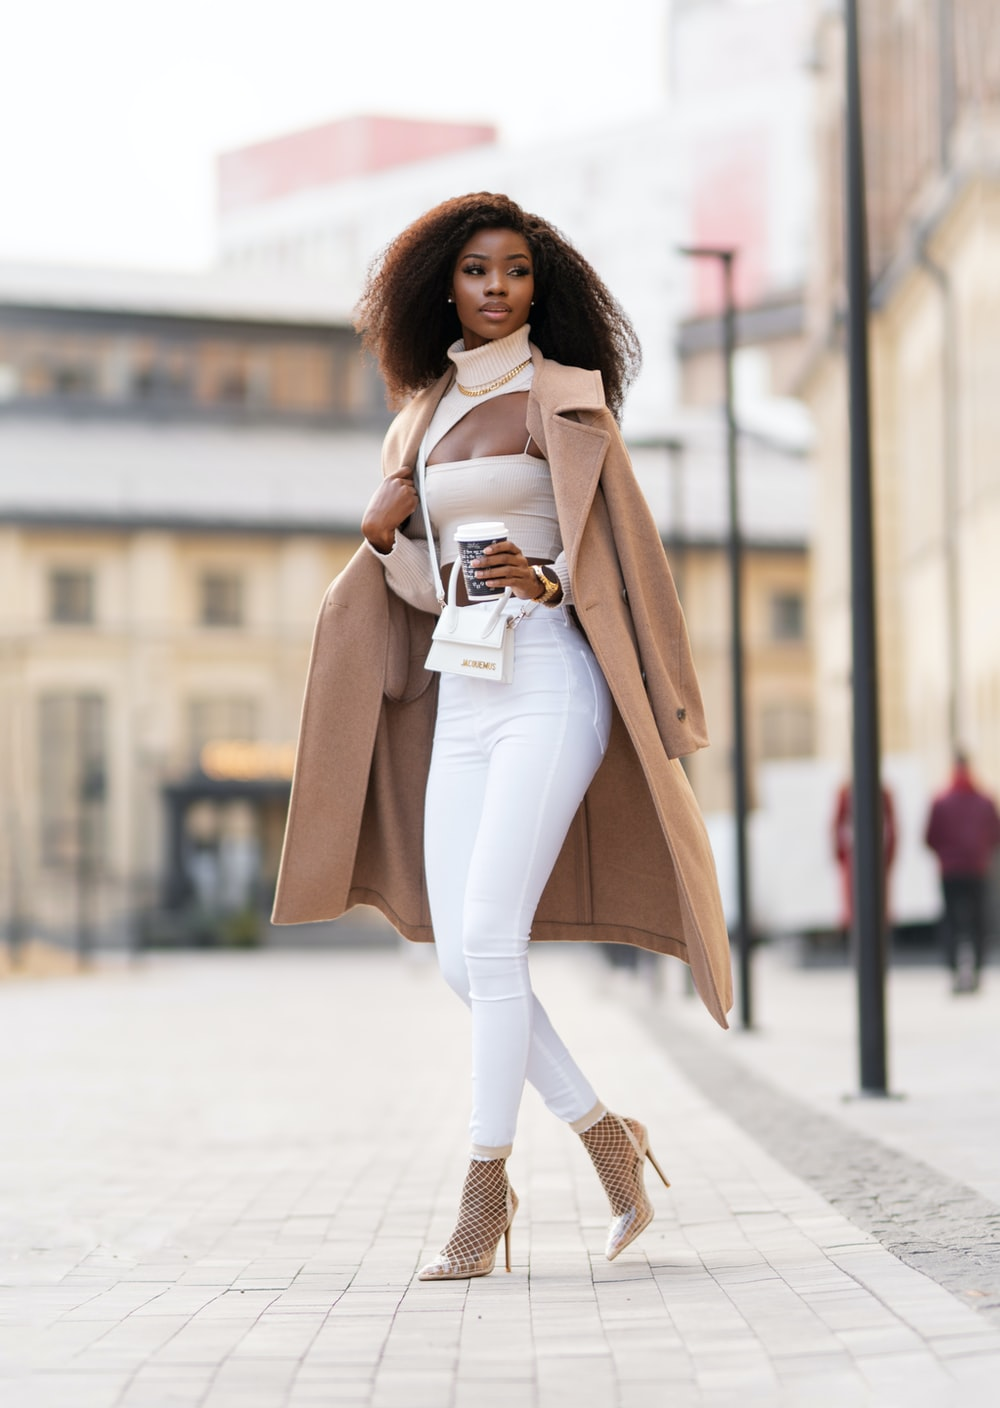 woman in white long sleeve shirt and white pants standing on road during daytime